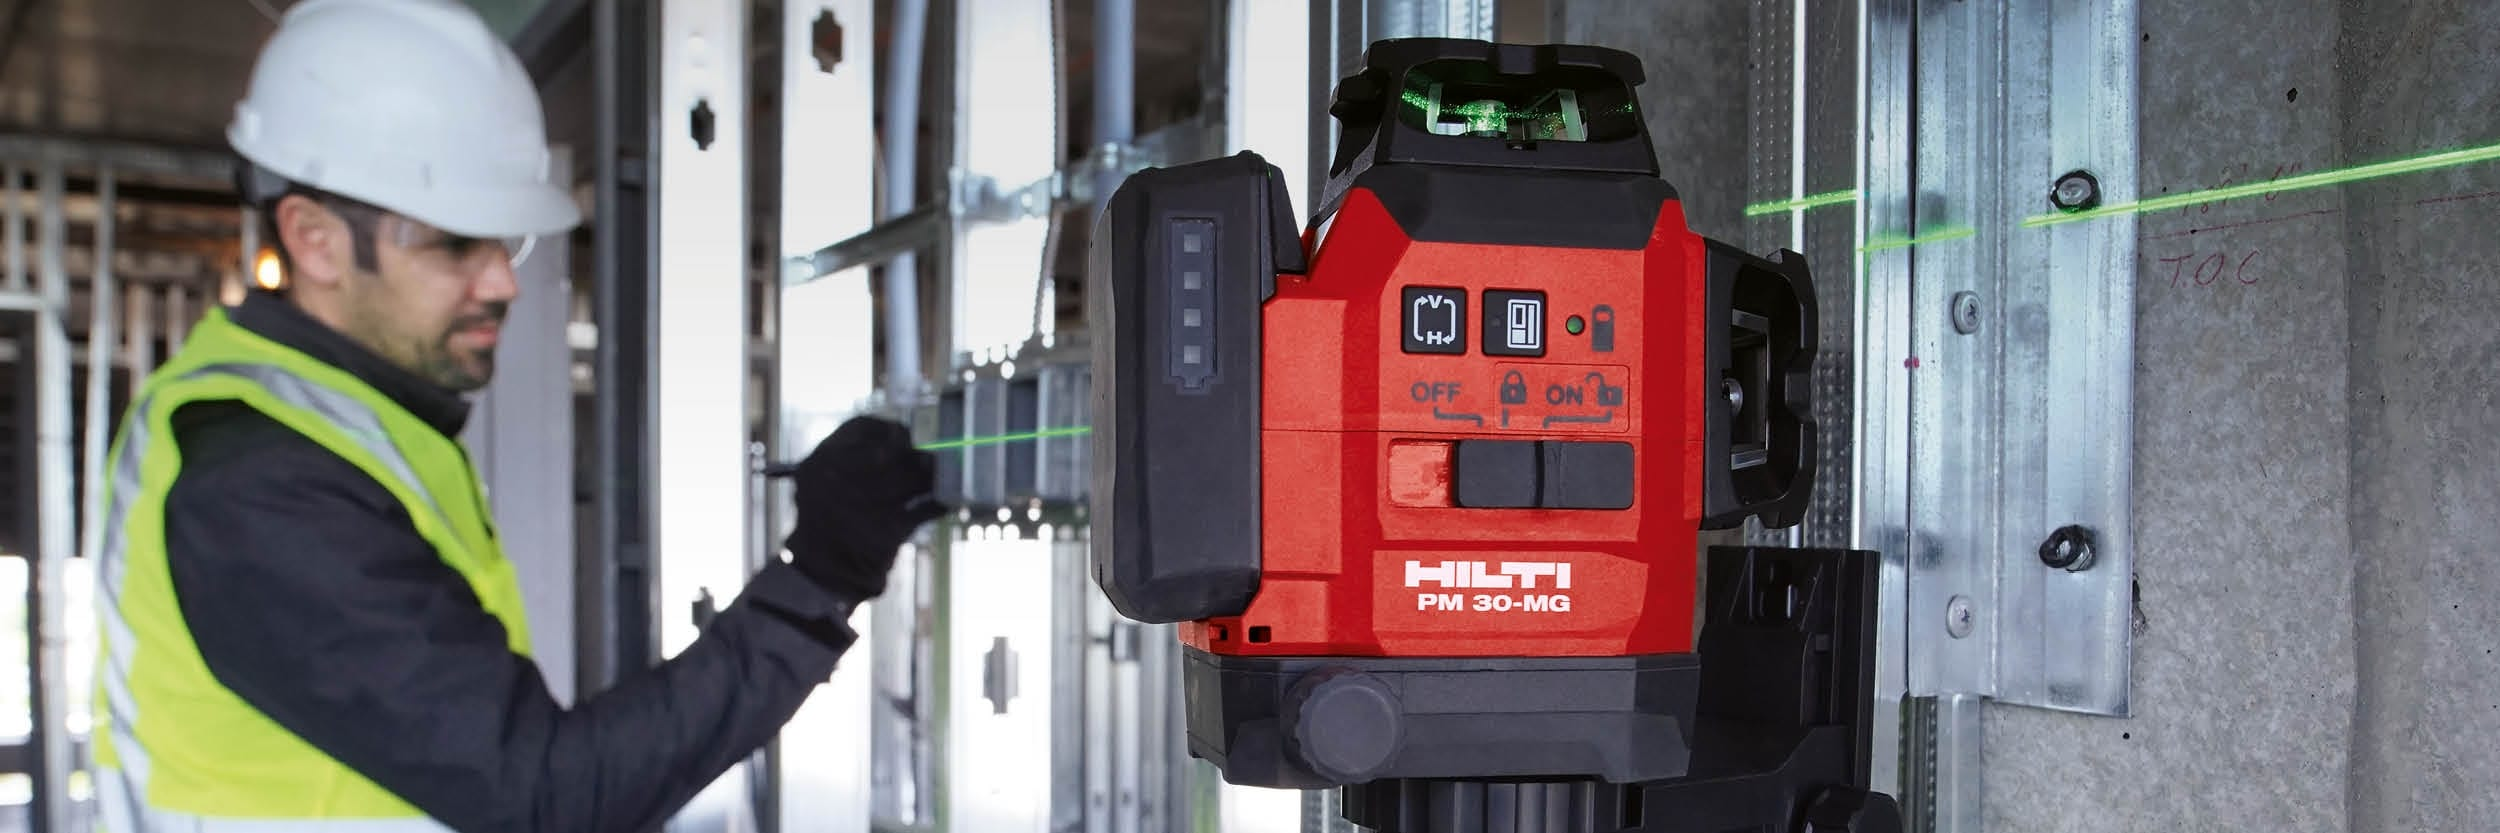 Hilti PM 40-MG green beam multi-line laser for aligning, plumbing, squaring and leveling